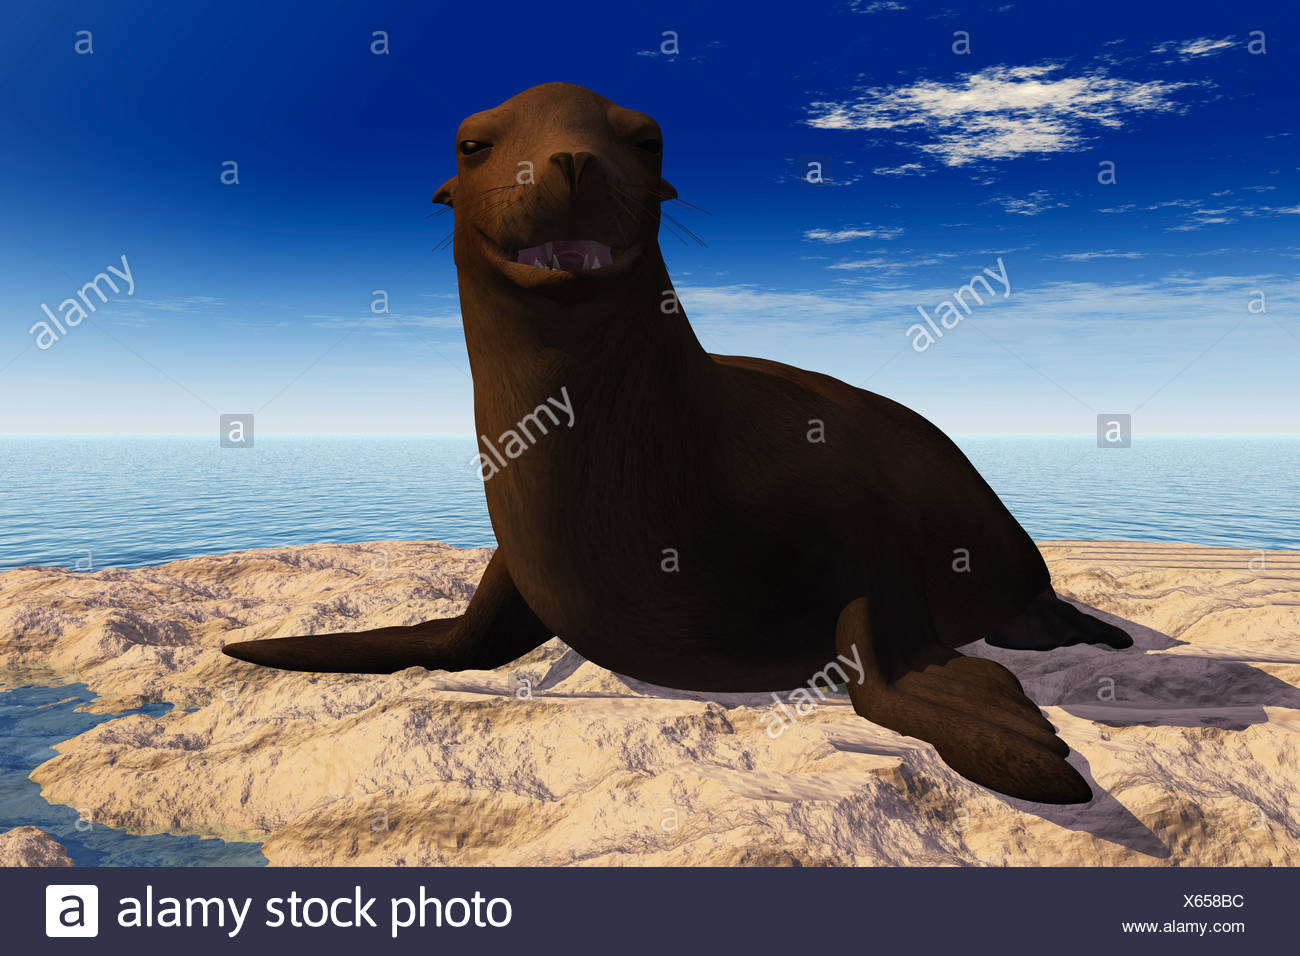 Computer Illustration Of A Seal Smiling - Stock Image